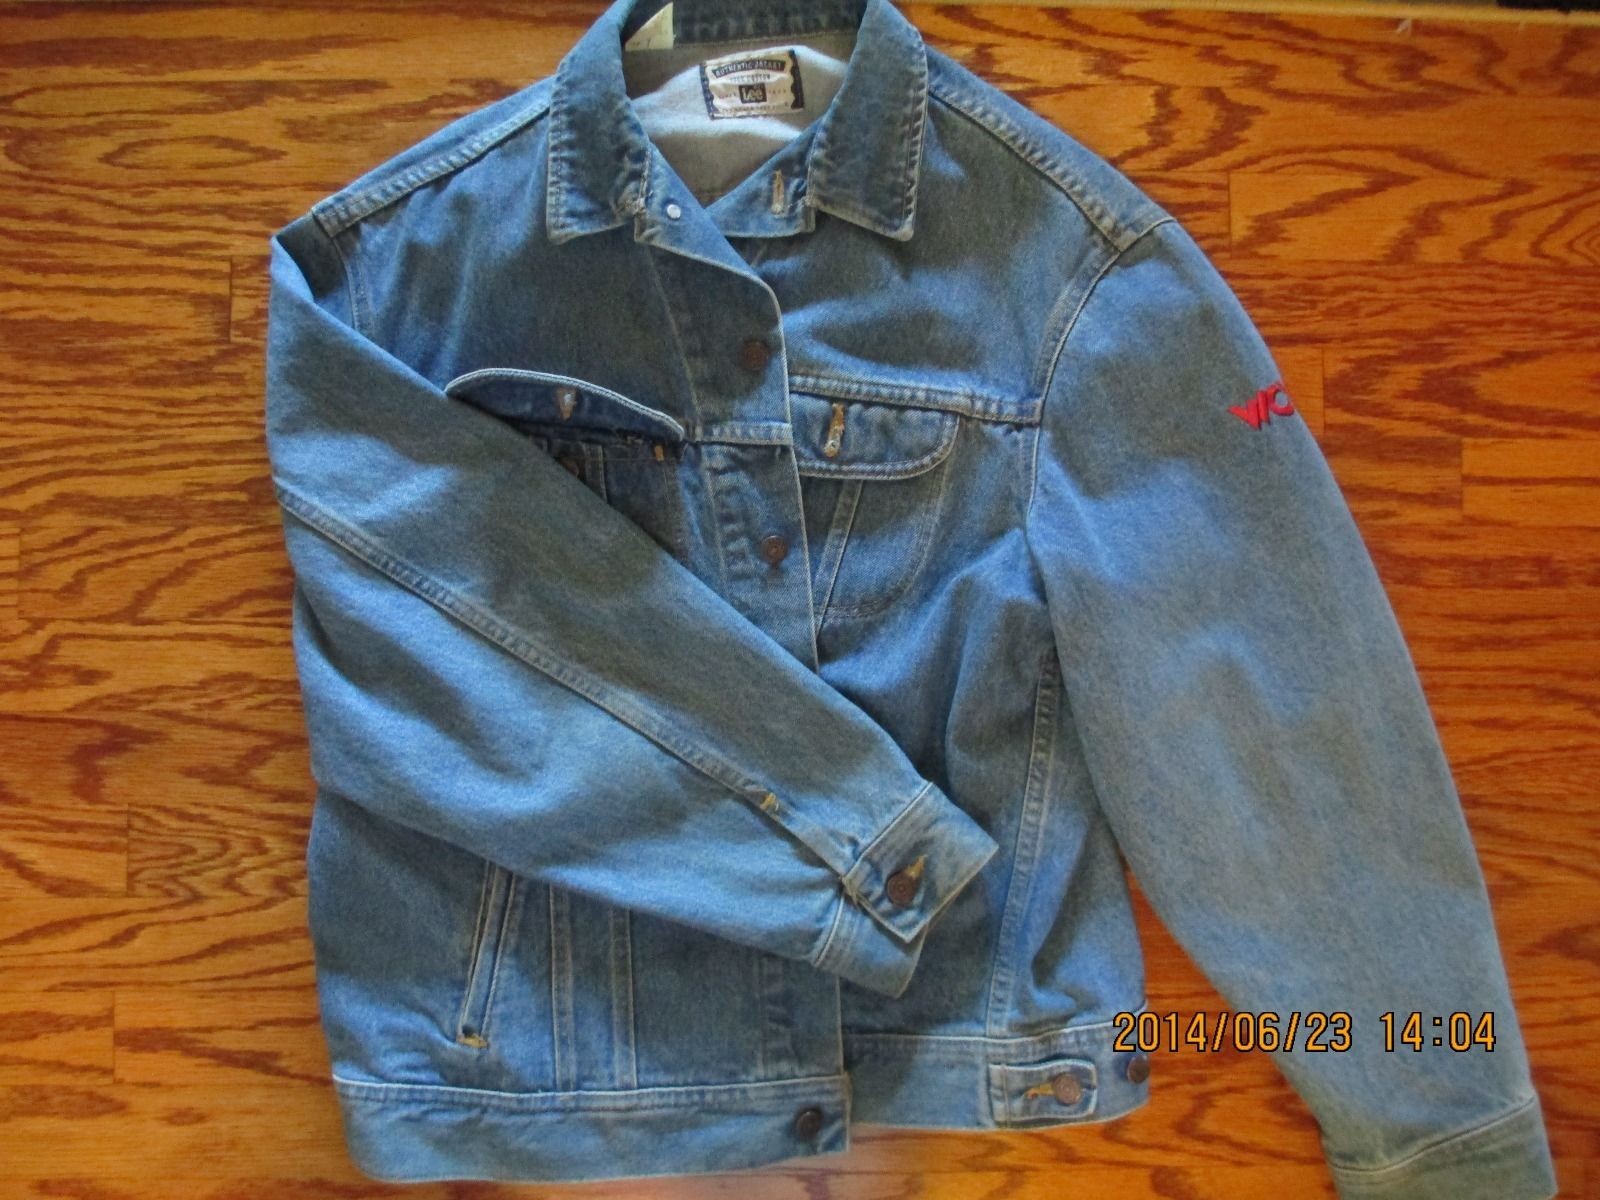 WCW Monday Nitro denim jean jacket front